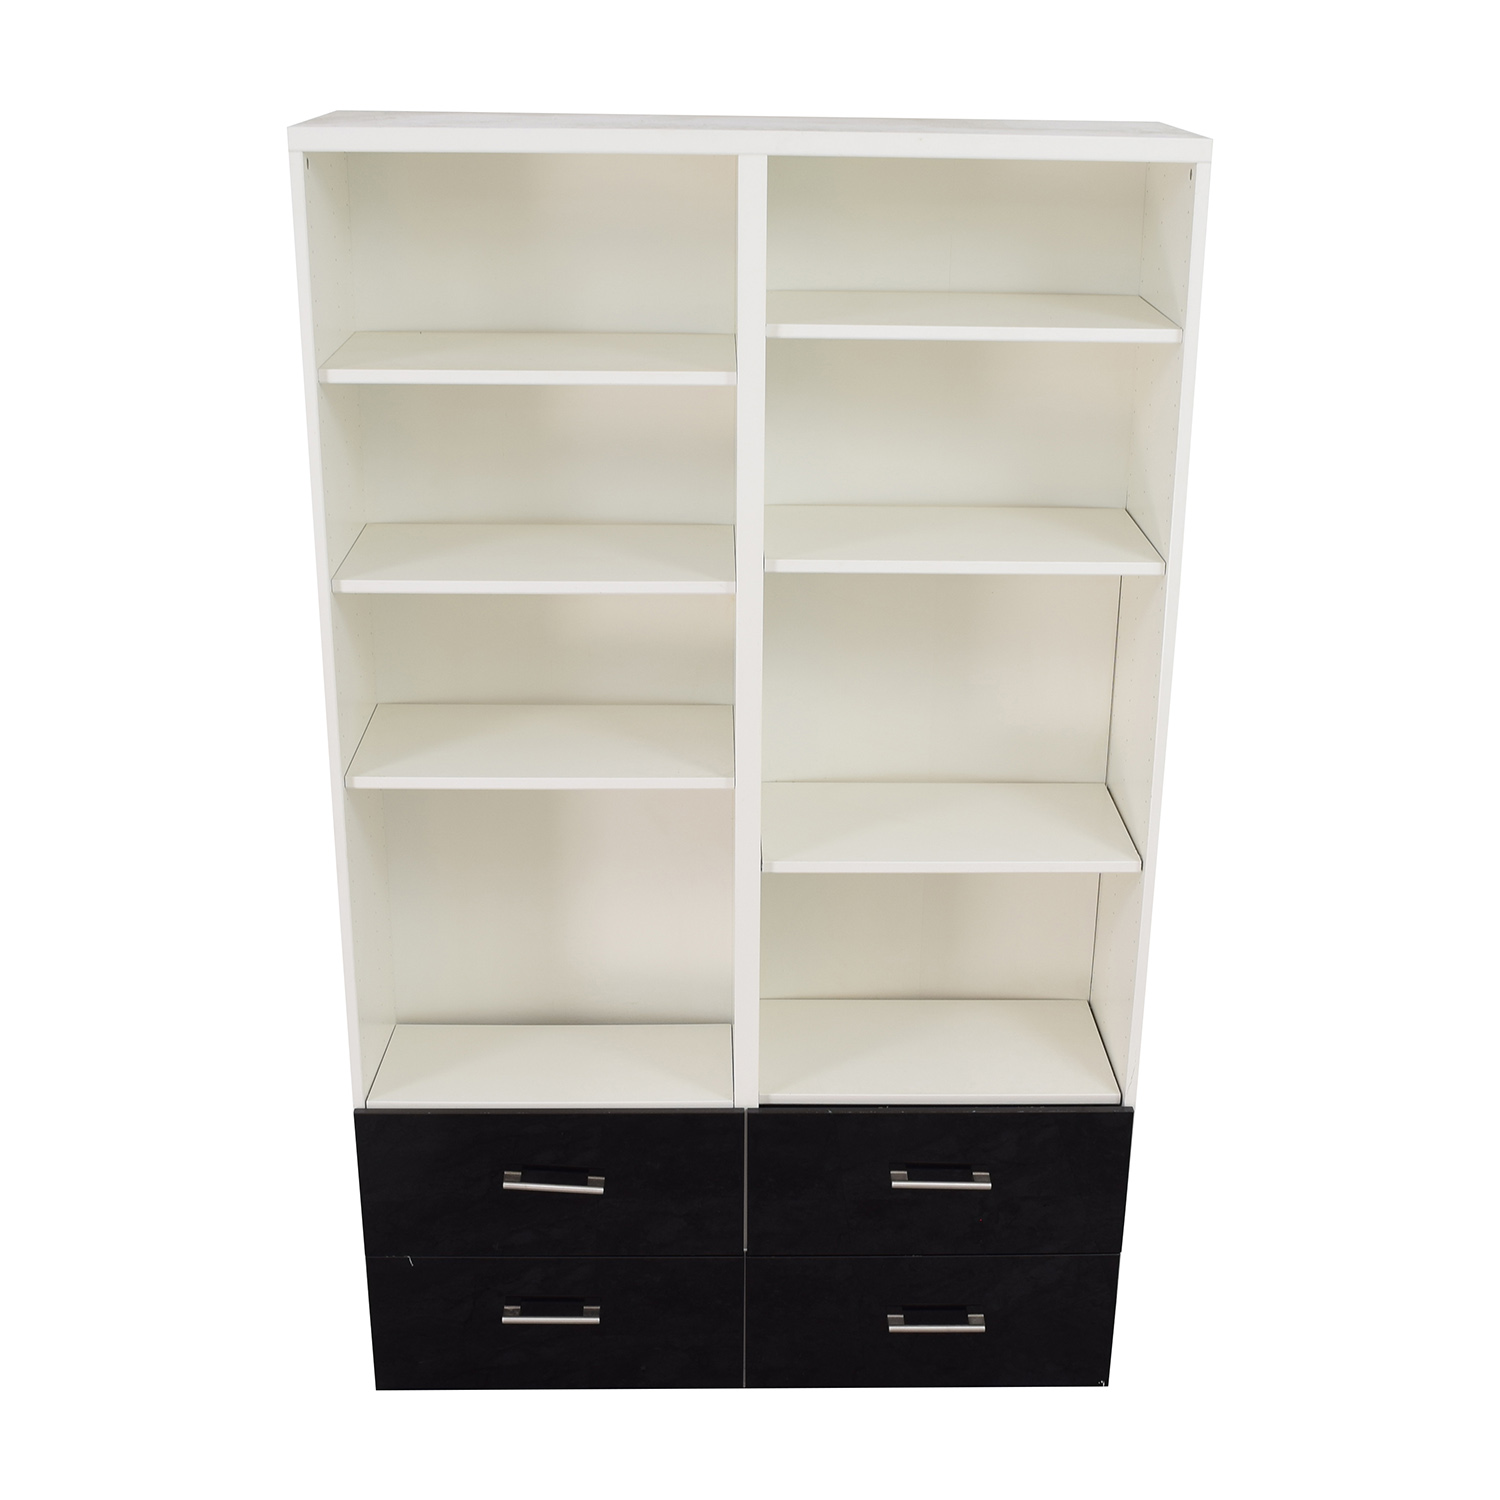 IKEA IKEA Double Shelf and Drawer Set discount